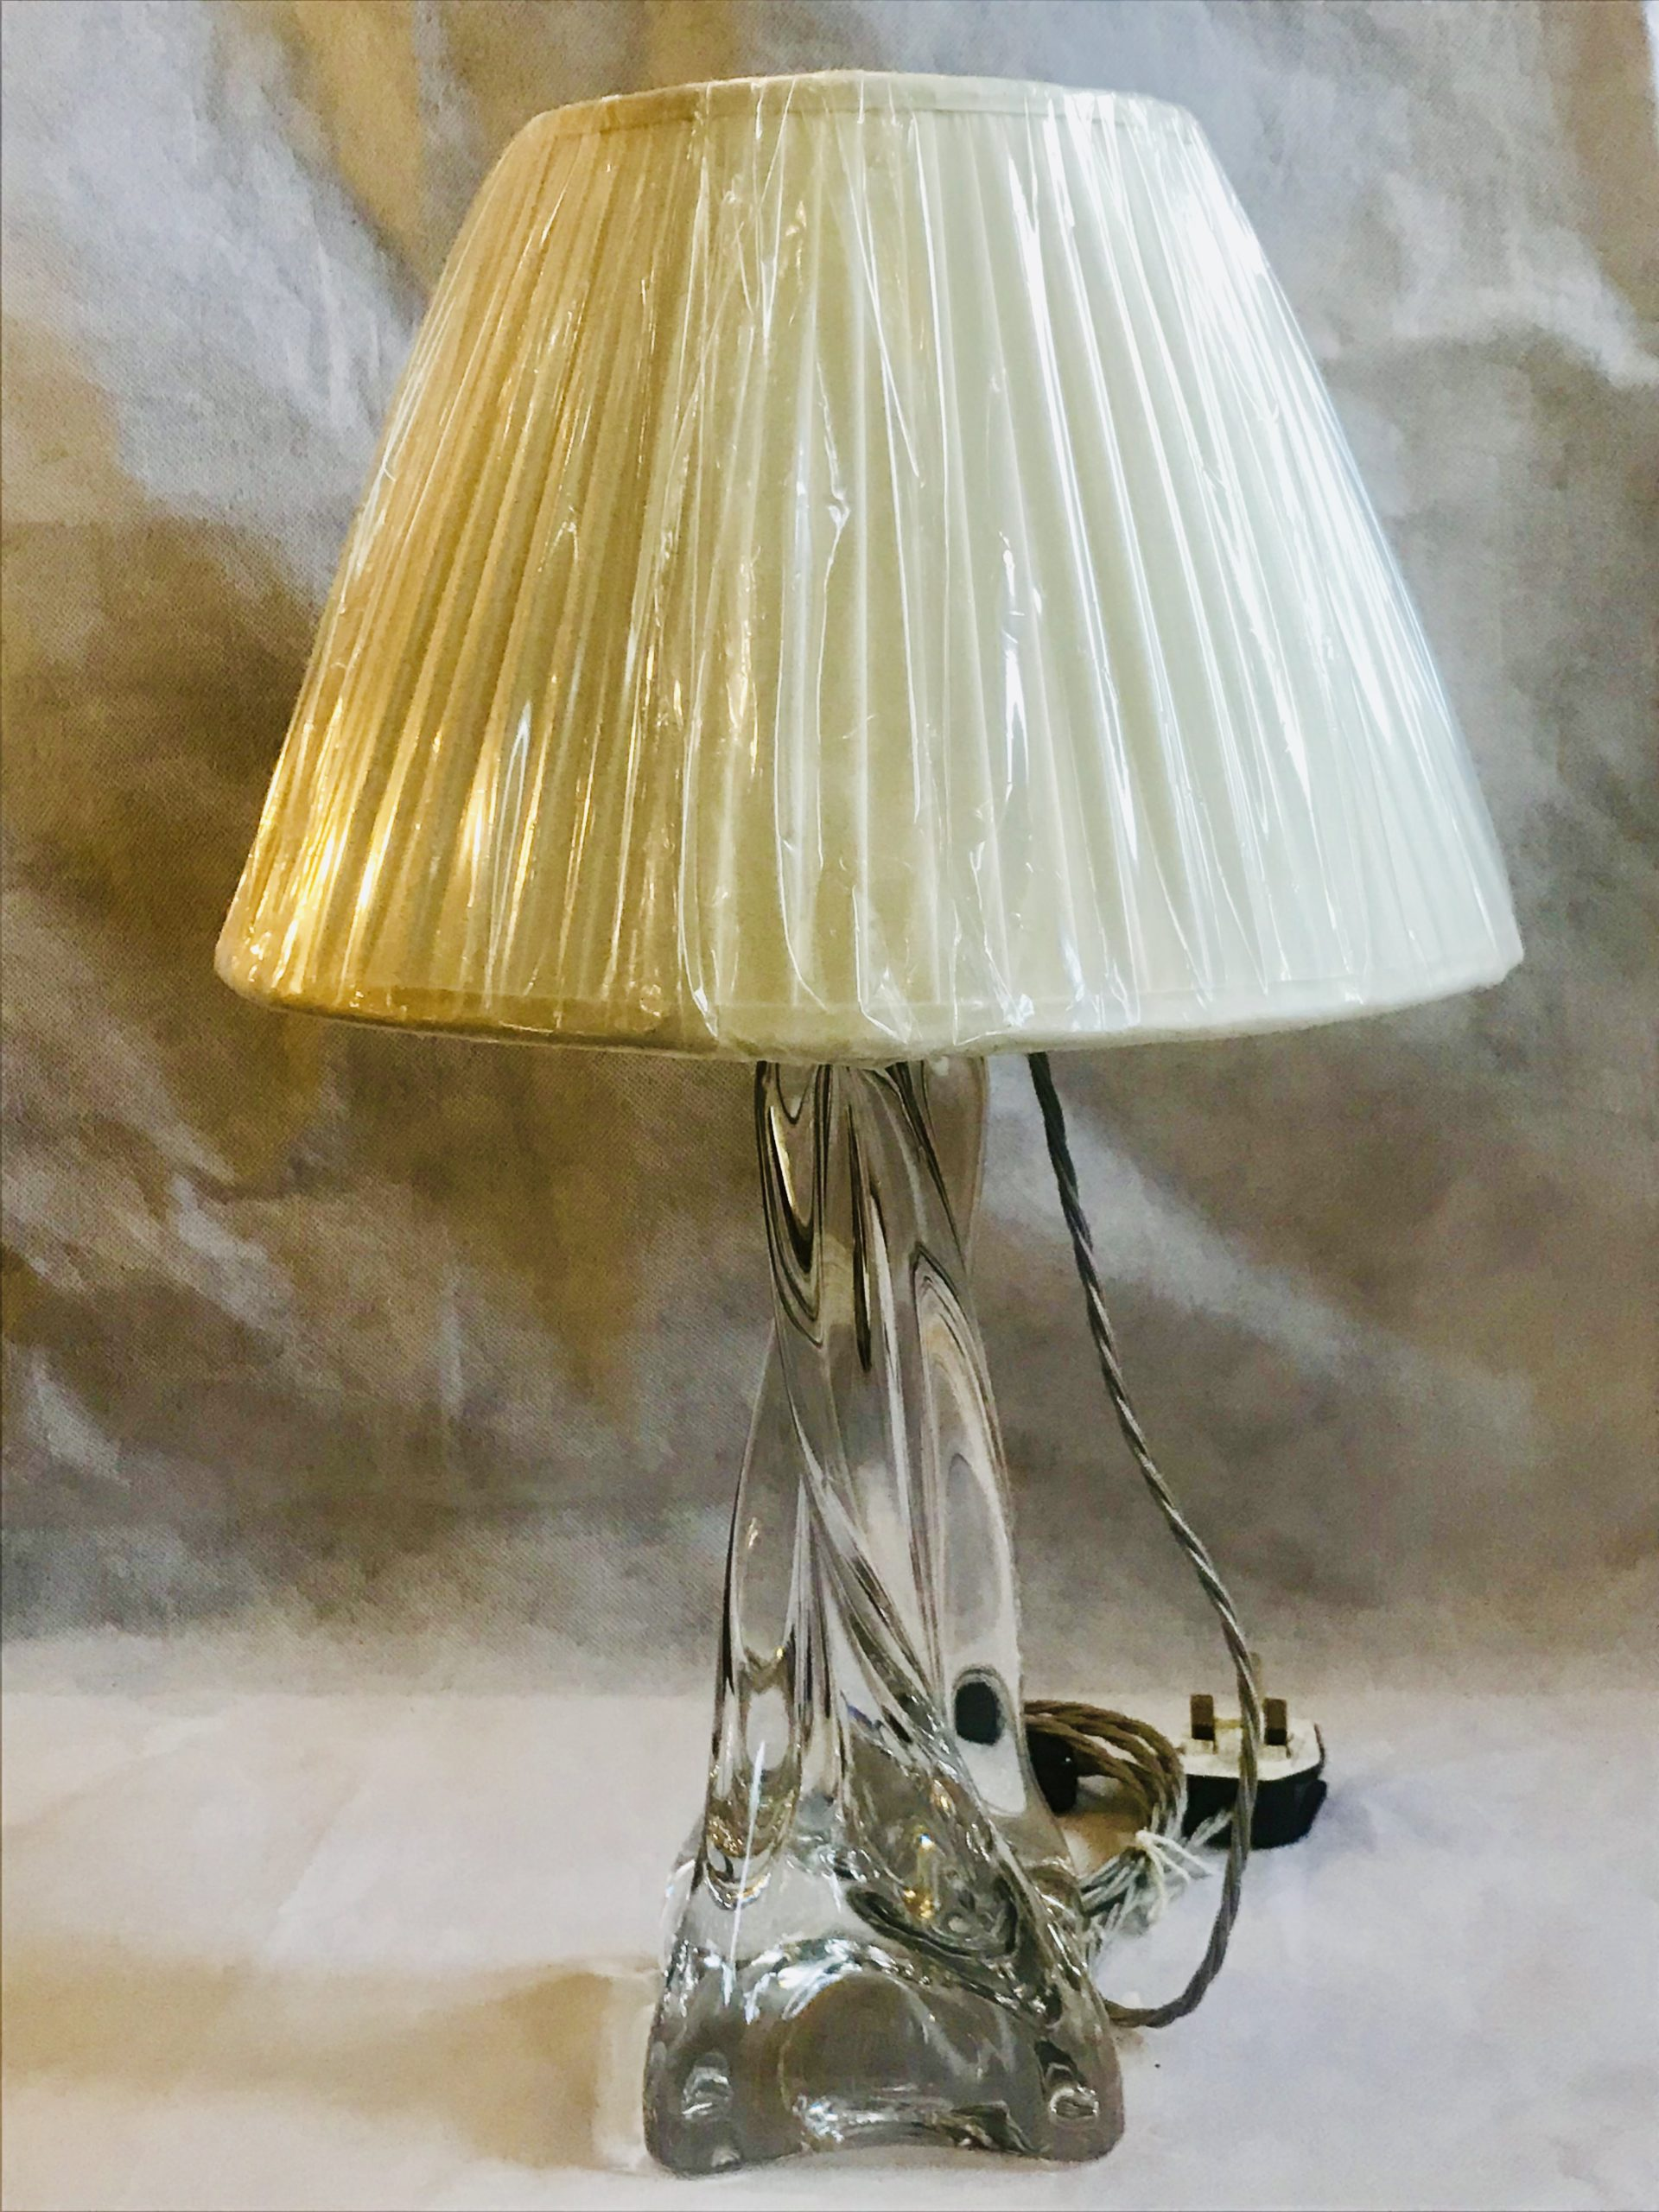 Image of: Baccarat Crystal Table Lamp Tl 148 Retouch Lighting